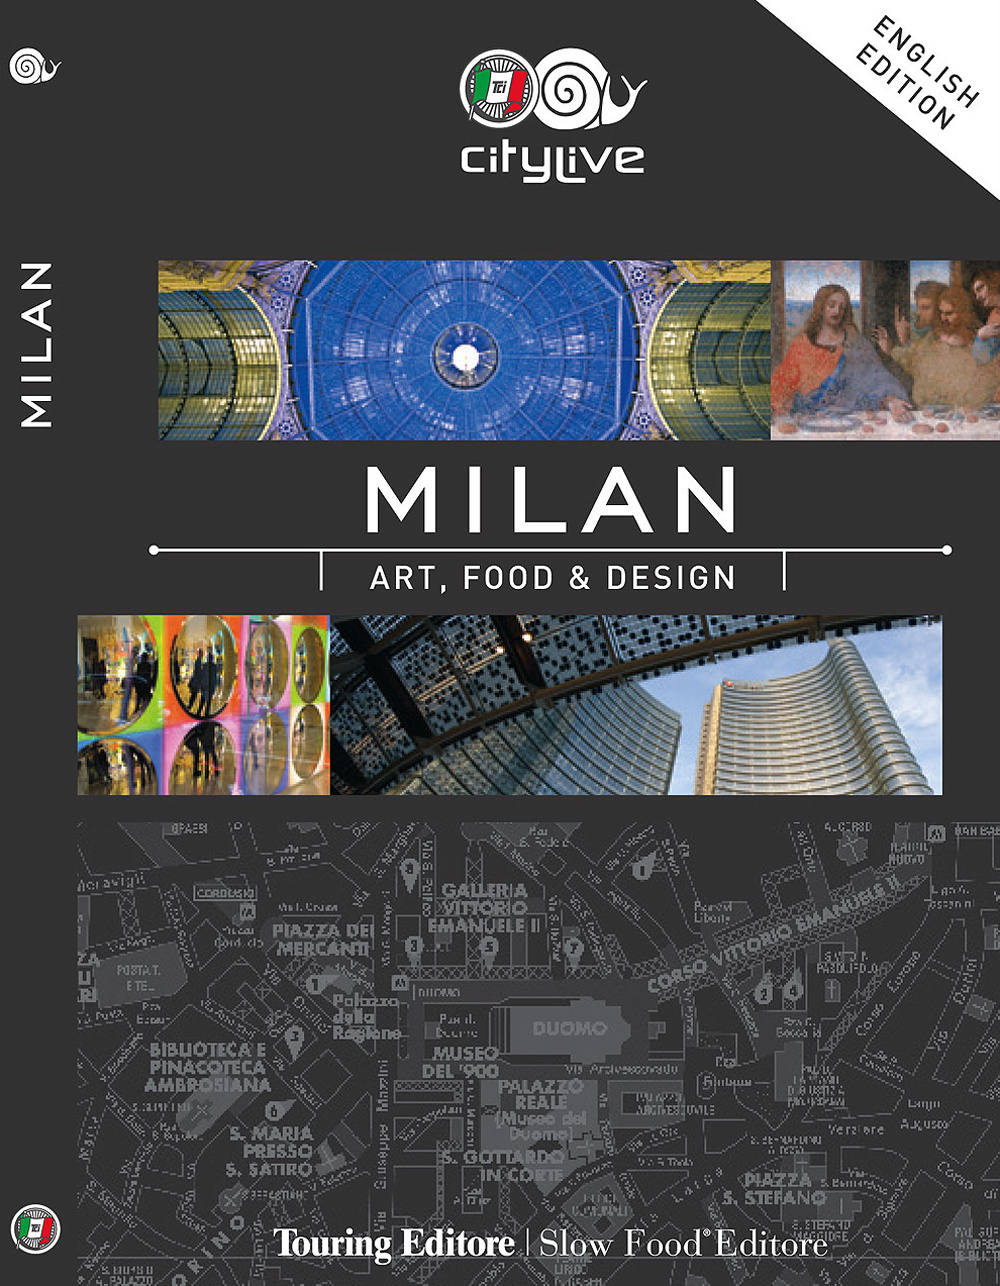 MILAN. ART, FOOD & DESIGN - 9788836567294